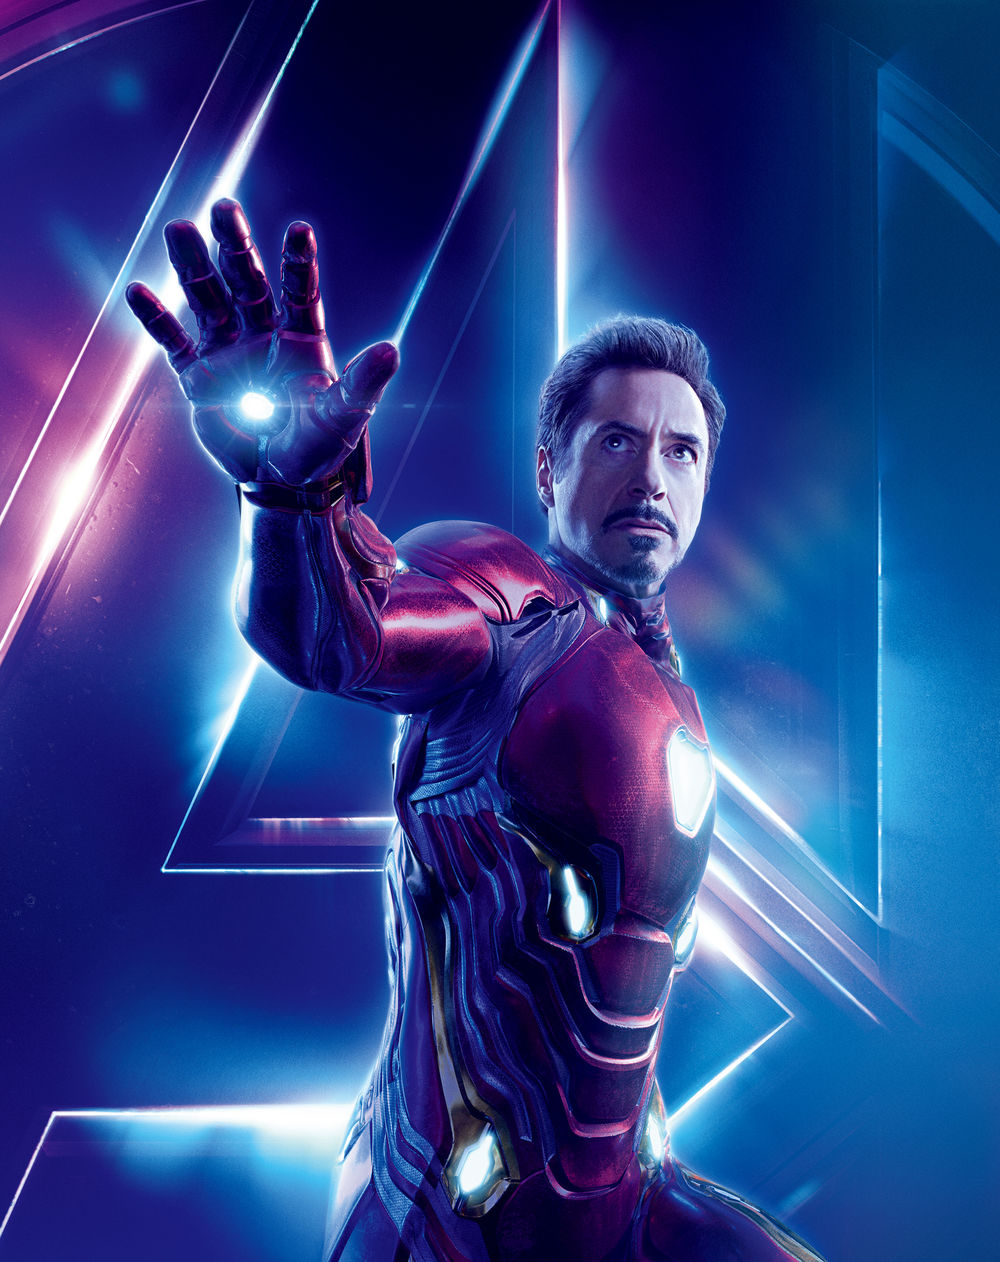 860346b7c67 Iron Man (Marvel Cinematic Universe)